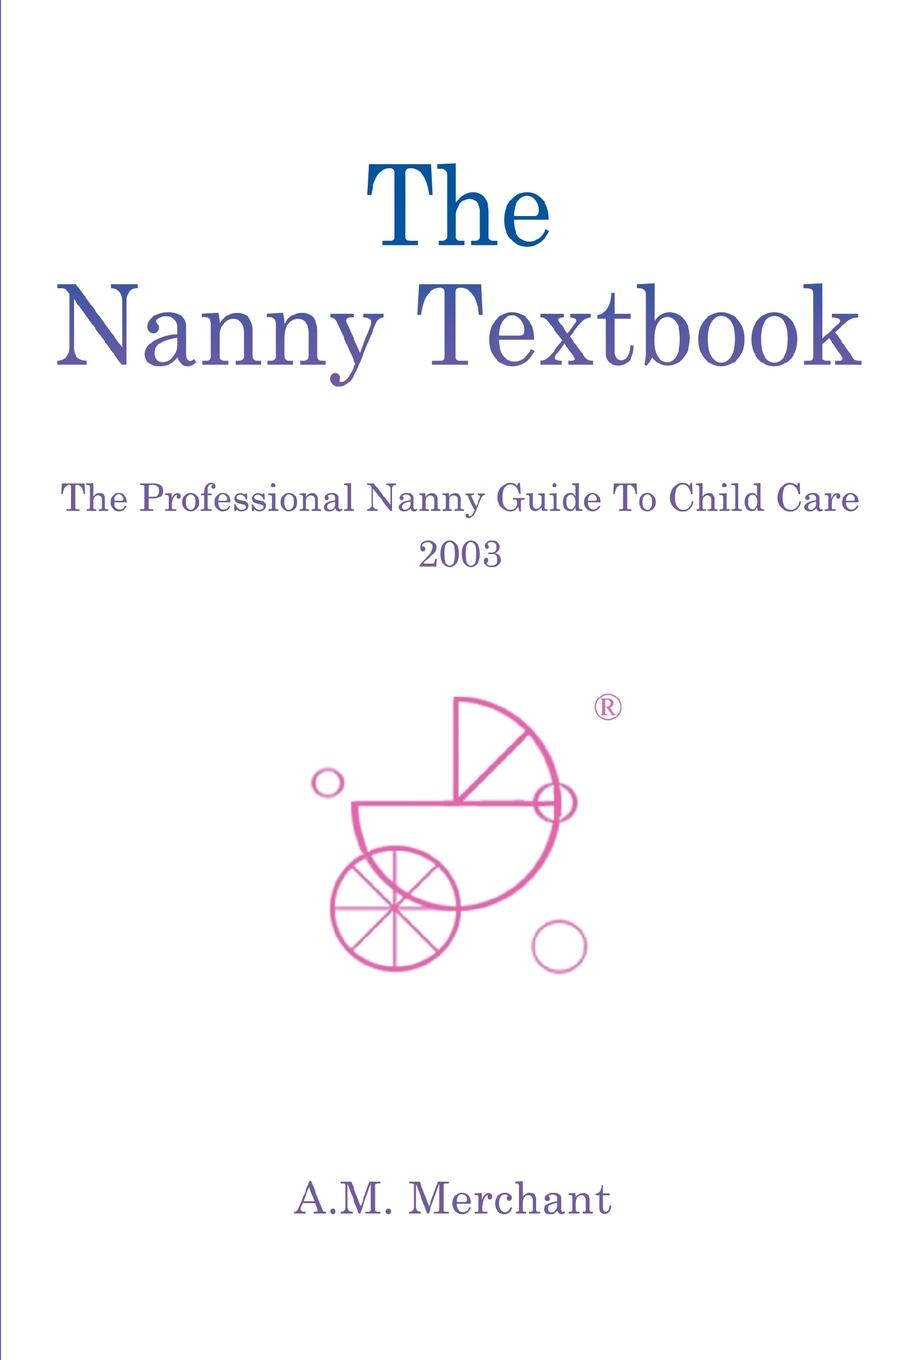 A. M. Merchant The Nanny Textbook. Professional Guide To Child Care 2003